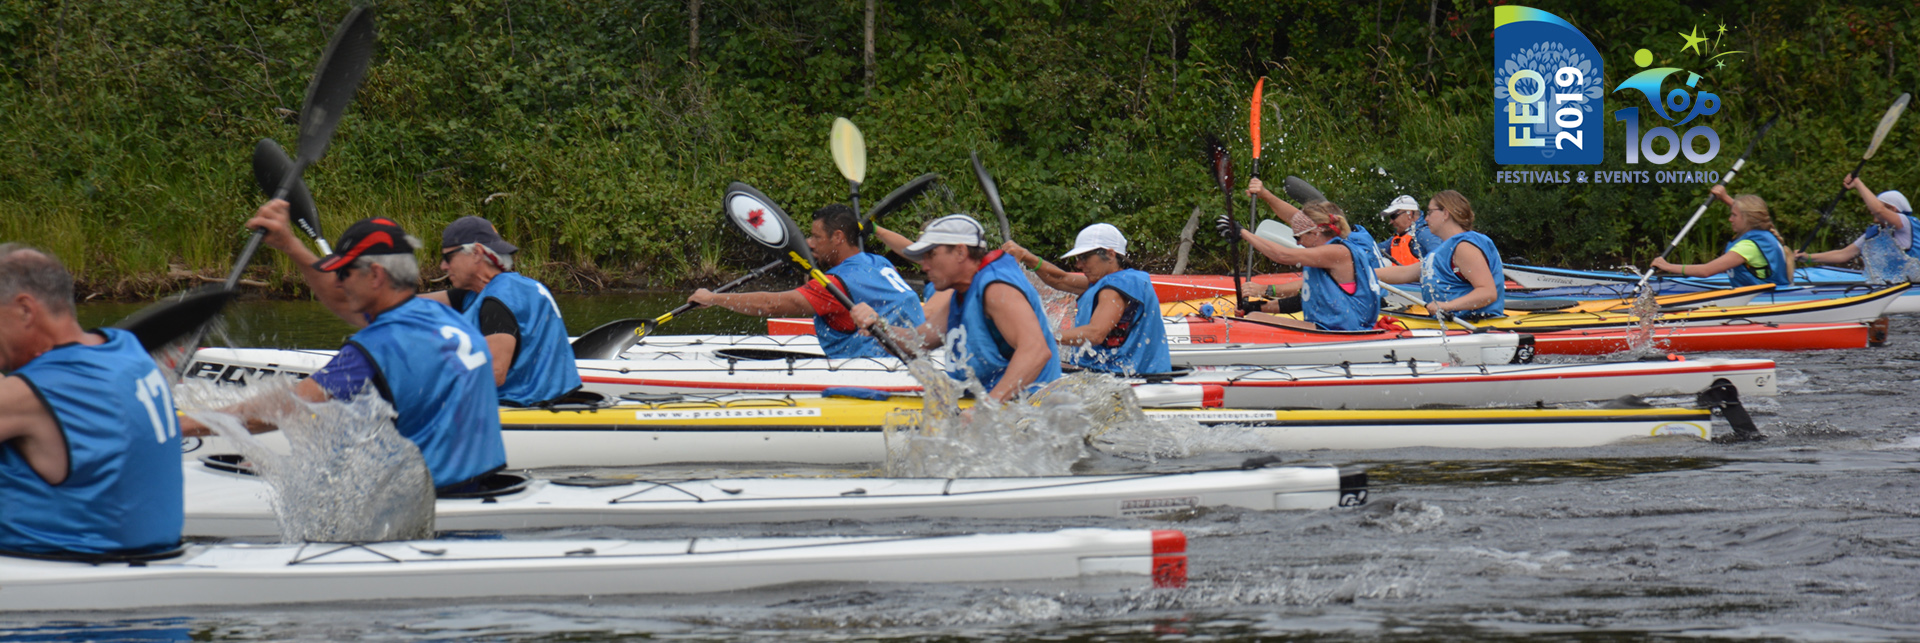 <h2>August 23, 24 and 25 2019</h2> 11th Annual Great Canadian Kayak Challenge and Festival!